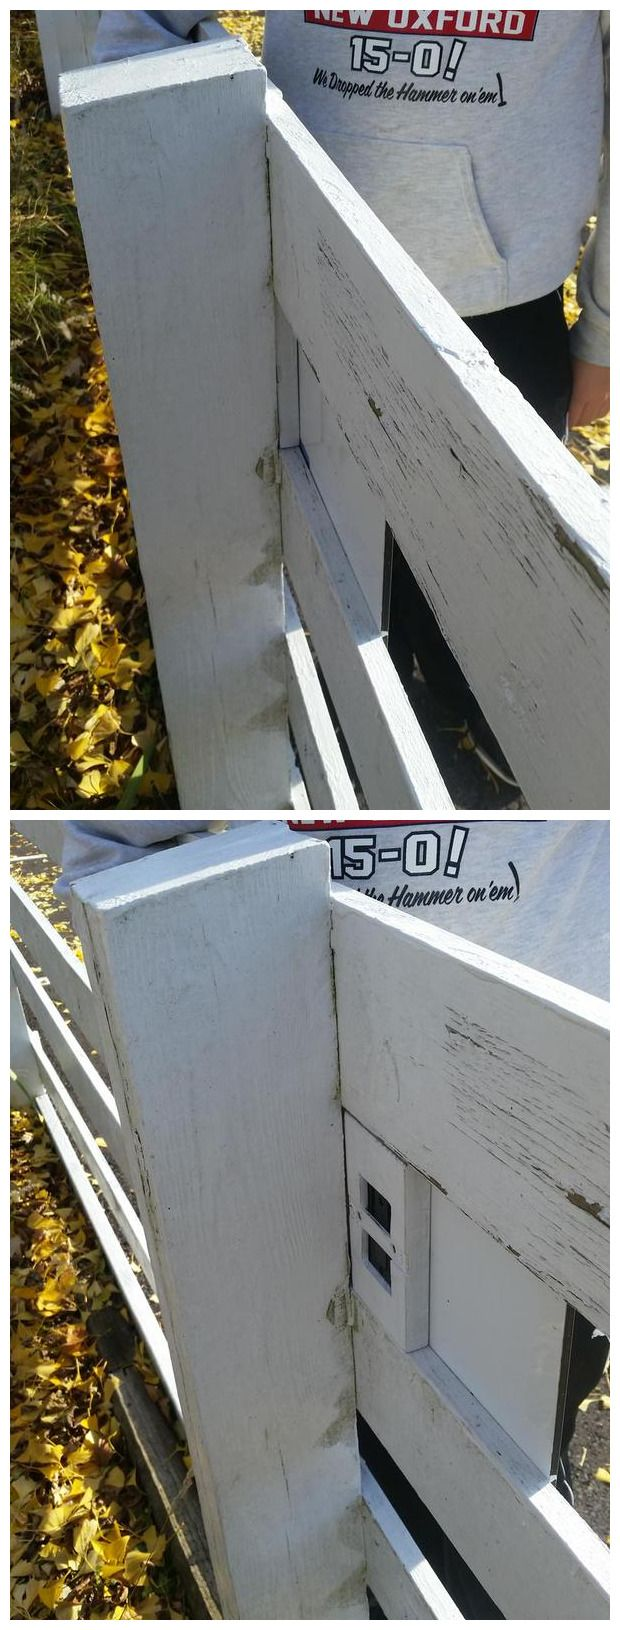 "The old ""behind the fence post"" trick. This is nicely done; a snug fit and painted to blend it well. (pics from Twitter stitched together by I.B. Geocaching and pinned to Cool & Creative Micro Geocaches - pinterest.com/islandbuttons/cool-creative-micro-geocaches/) #IBGCp"